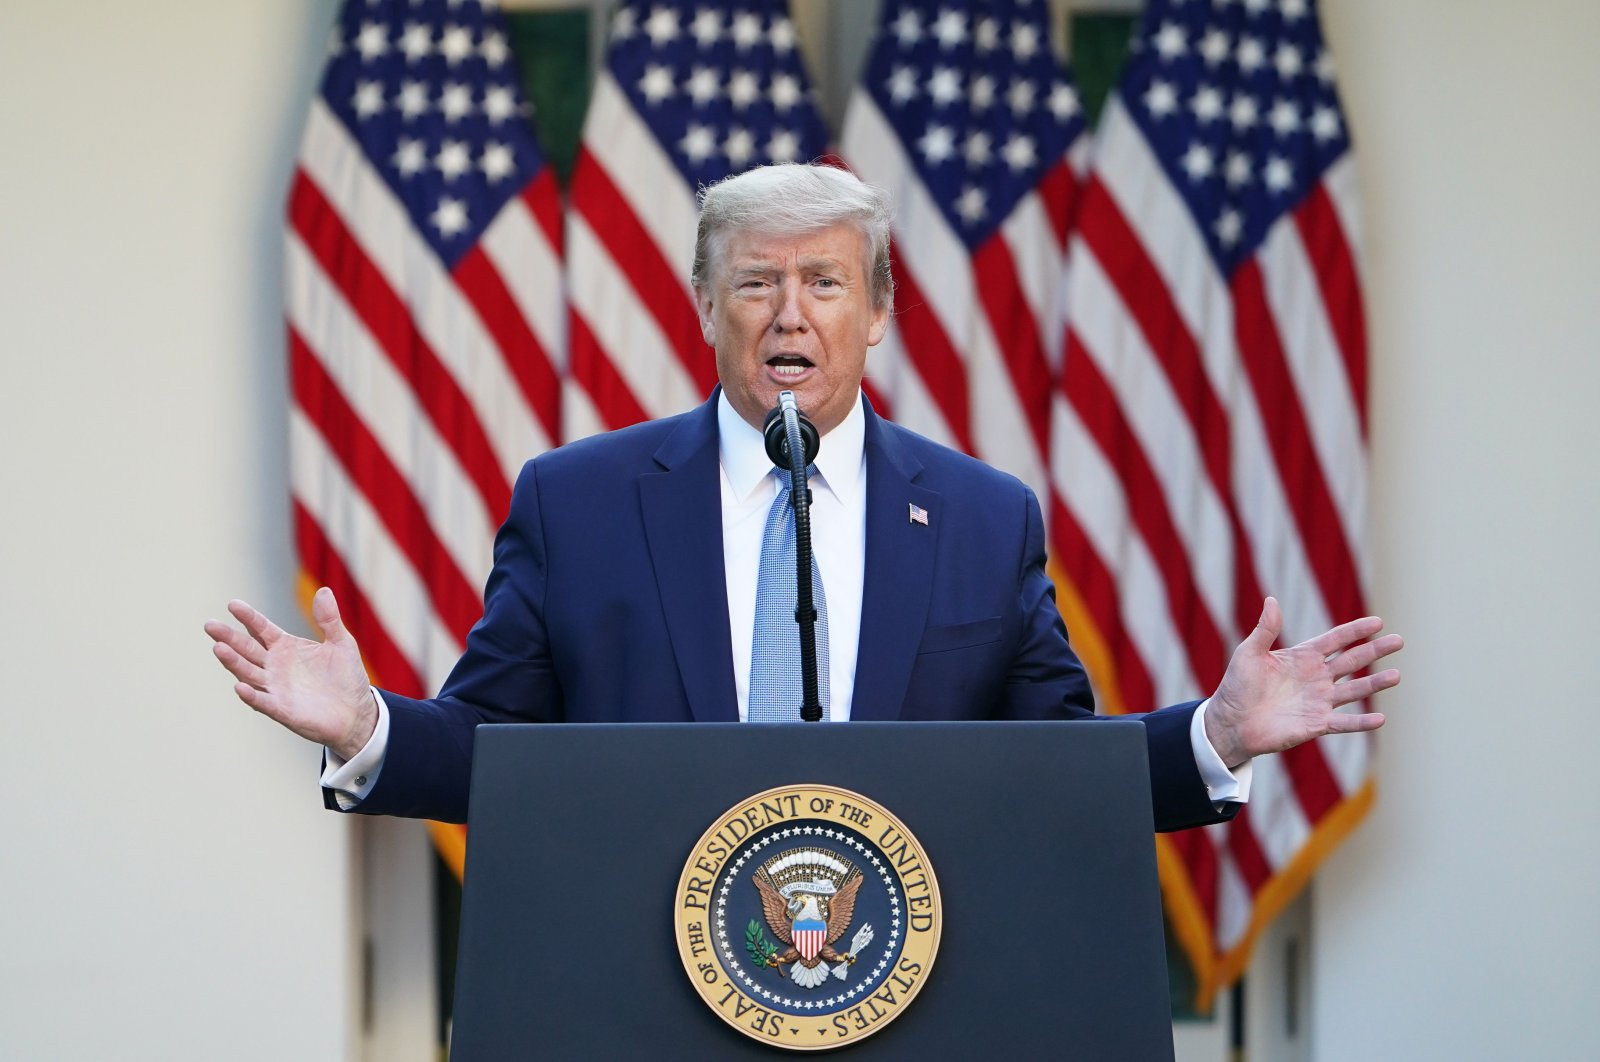 U.S. President Donald Trump gestures as he speaks during the daily briefing on the novel coronavirus in the Rose Garden of the White House, in Washington, D.C., U.S., April 15, 2020. (AFP Photo)